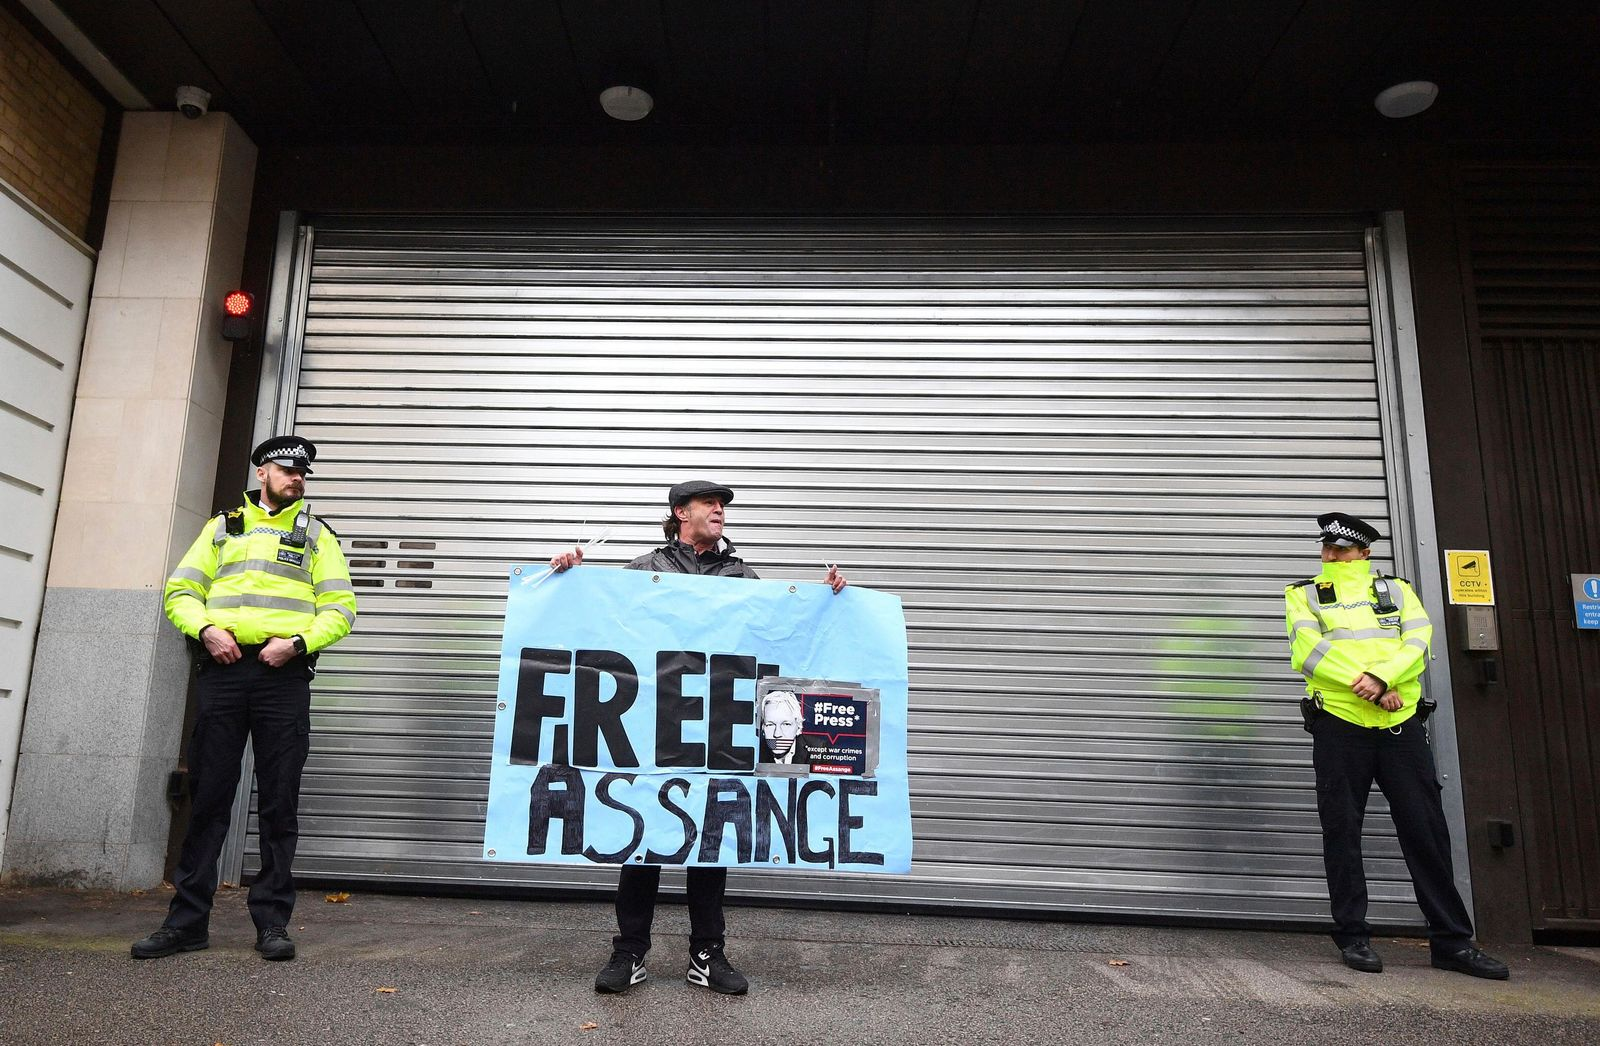 A supporters of Wikileaks founder Julian Assange demonstrate oustide Westminster Magistrates' Court in London where Assange is expected to appear as he fights extradition to the United States on charges of conspiring to hack into a Pentagon computer, in London, Monday, Oct, 21, 2019. (Victoria Jones/PA via AP)